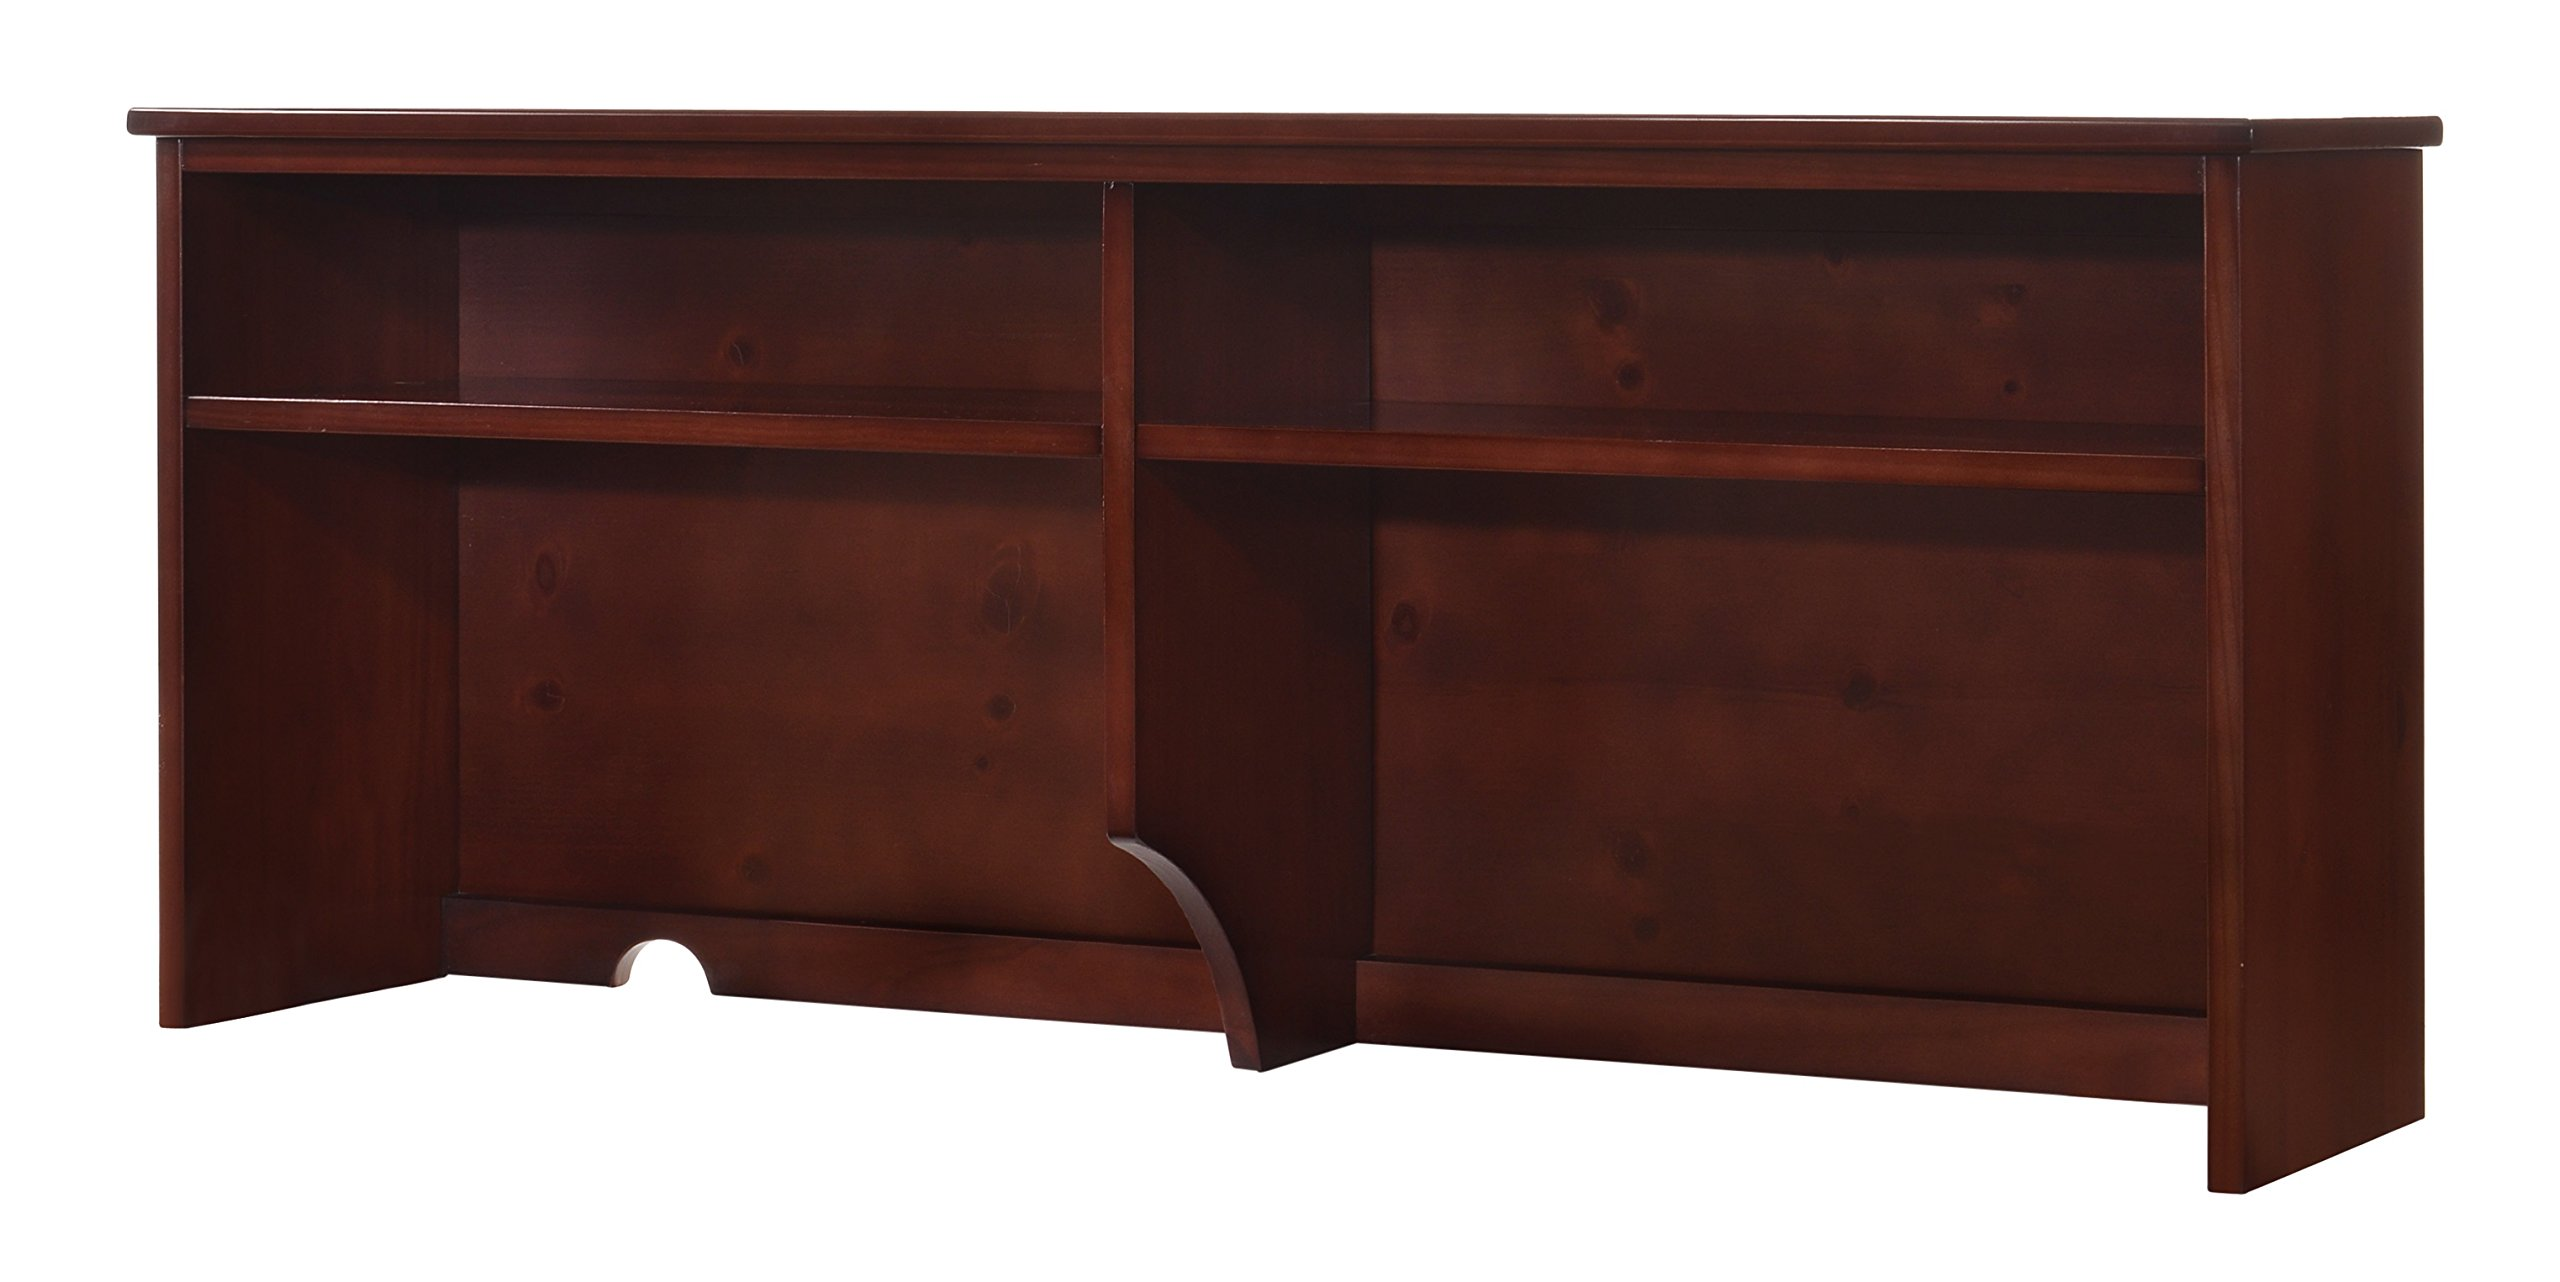 Canwood Lakecrest Hutch, Cherry, Desk Hutch Addition, Solid Pine and Composites Construction, Organizing Desk Hutch for Kids Room Teens Room or Small Apartments